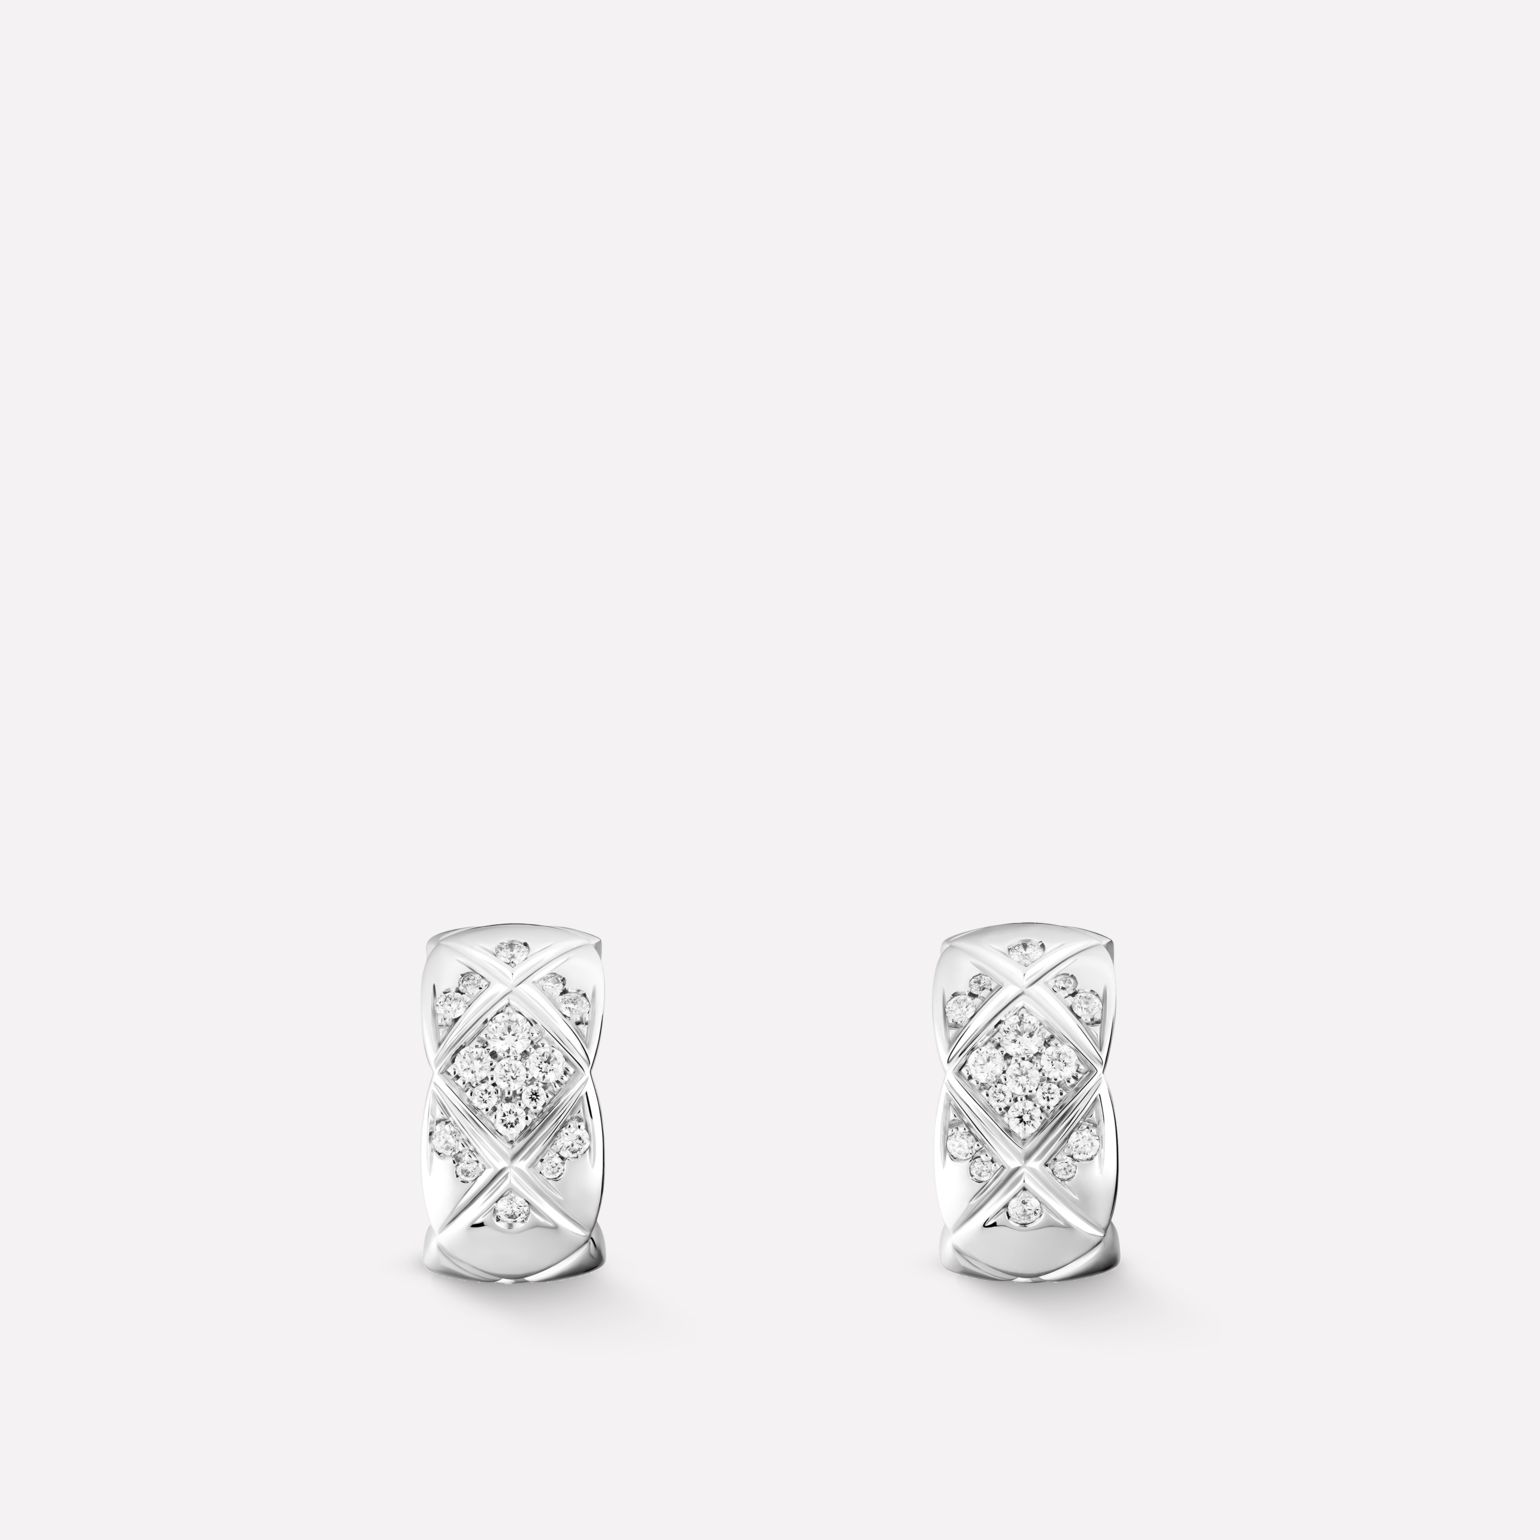 Boucles d'oreilles Coco Crush Motif matelassé, or blanc 18 carats, diamants